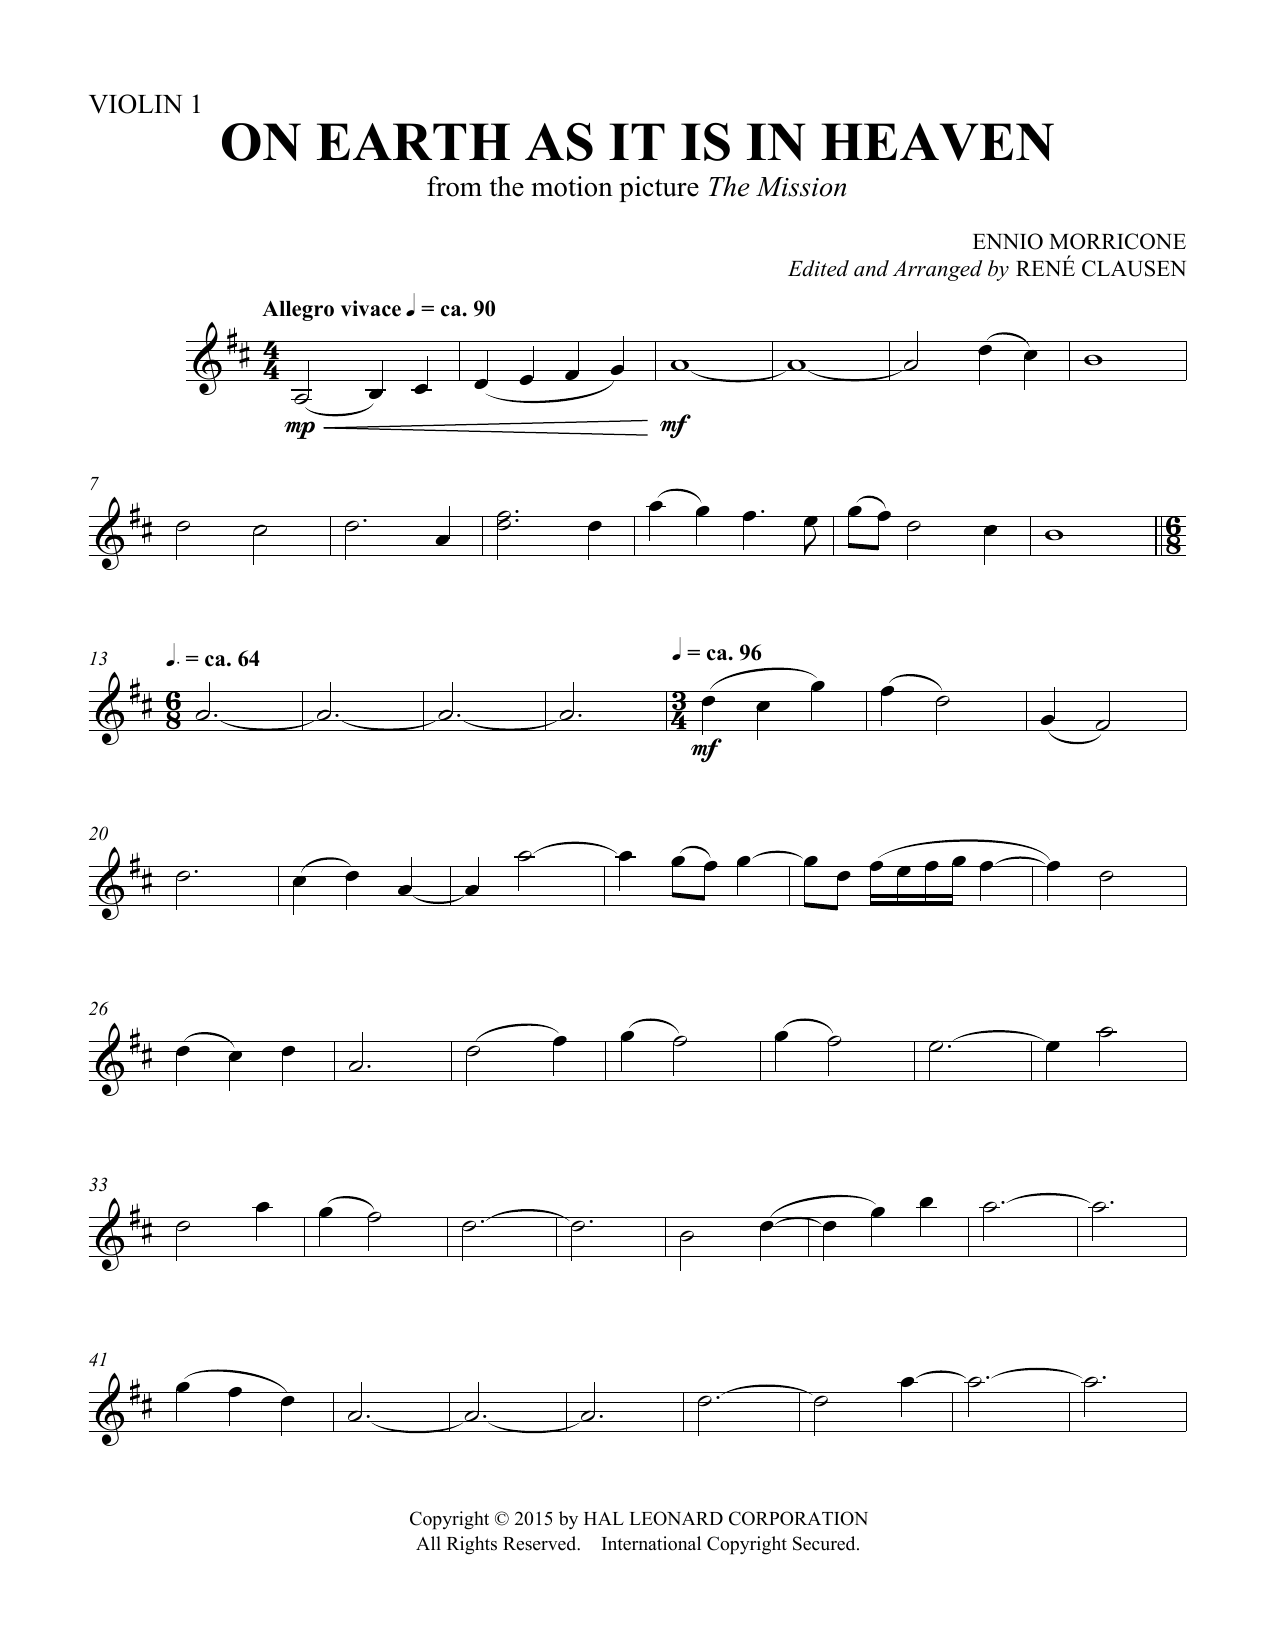 Rene Clausen On Earth As It Is In Heaven - Violin 1 sheet music notes and chords. Download Printable PDF.